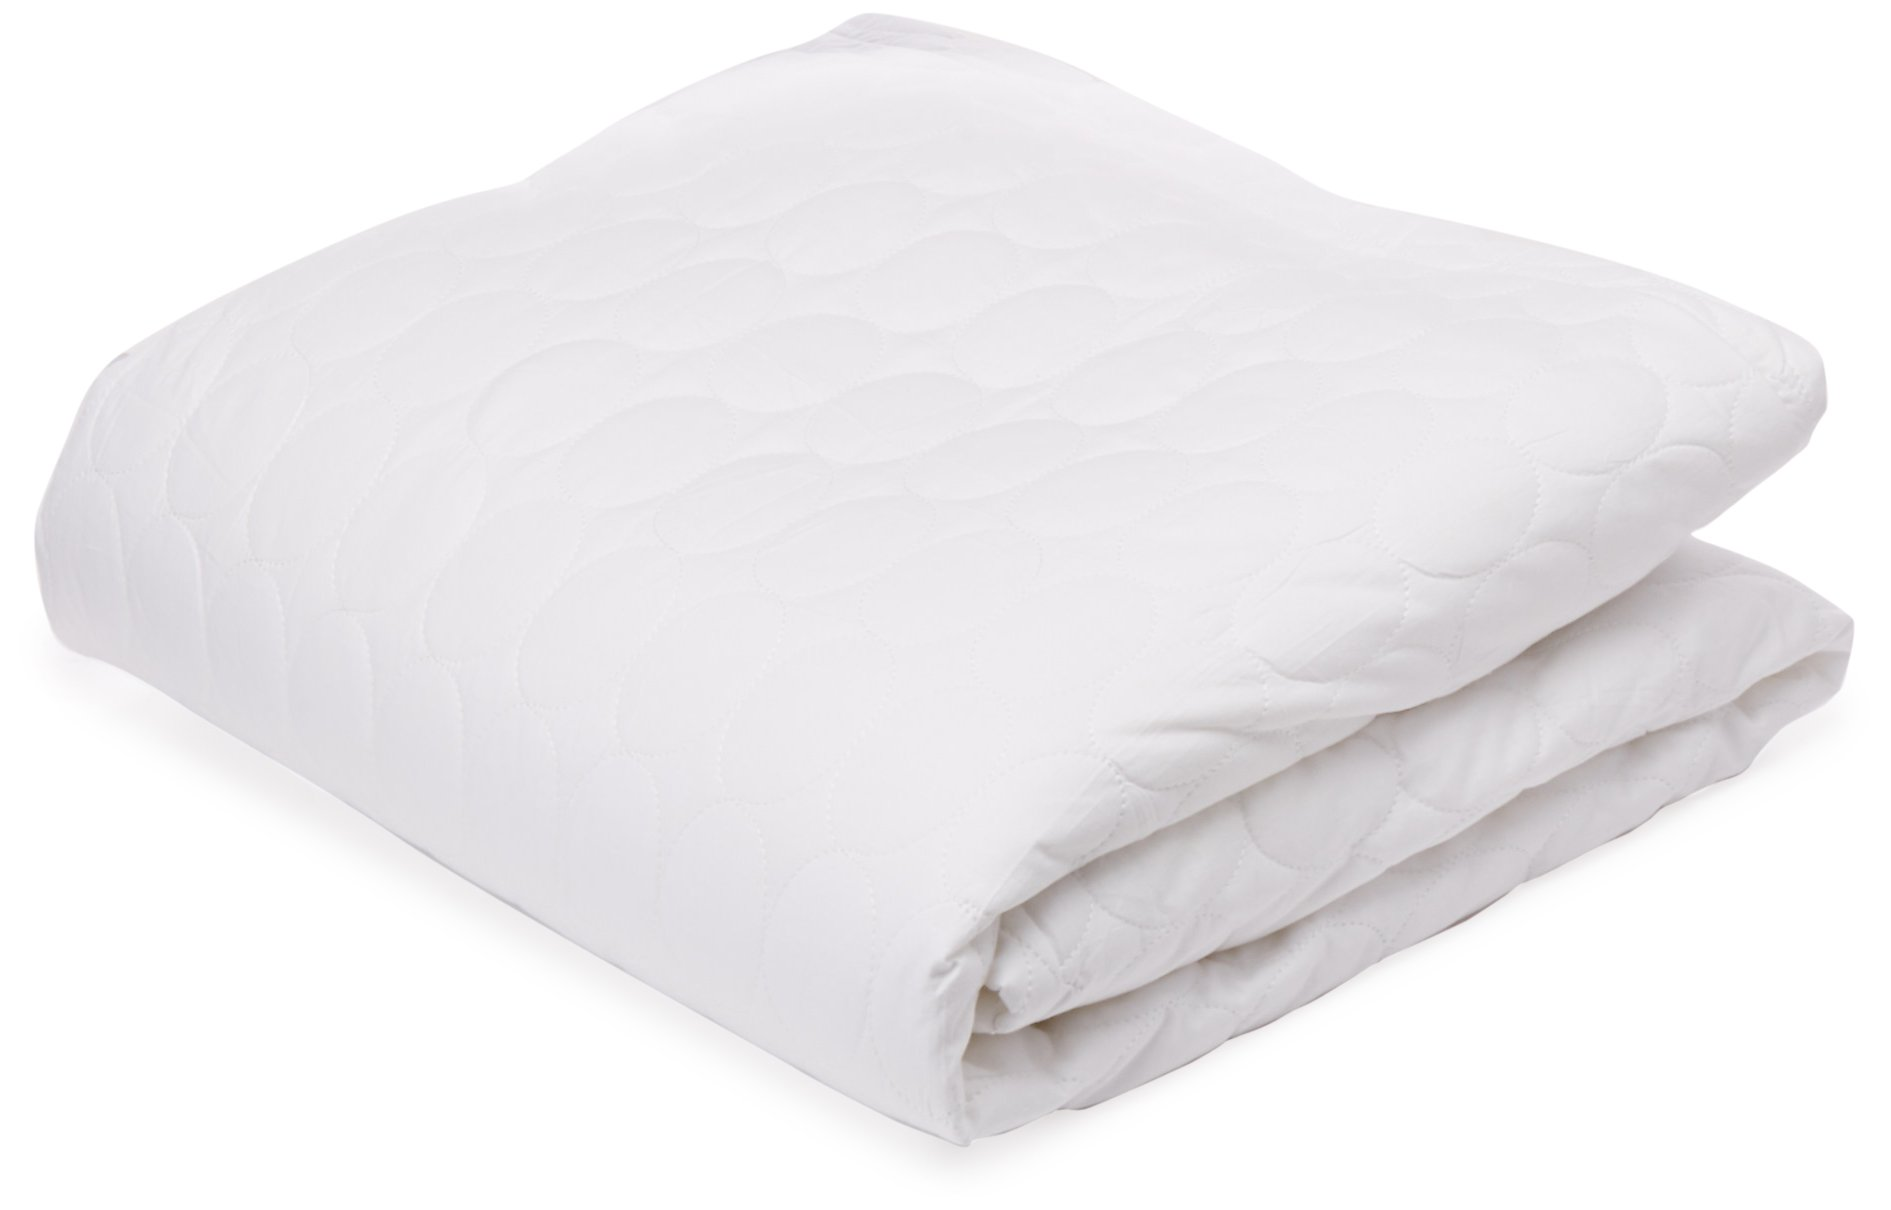 Remedy Bed Bug Dust Mite Cotton Mattress Protector, Full